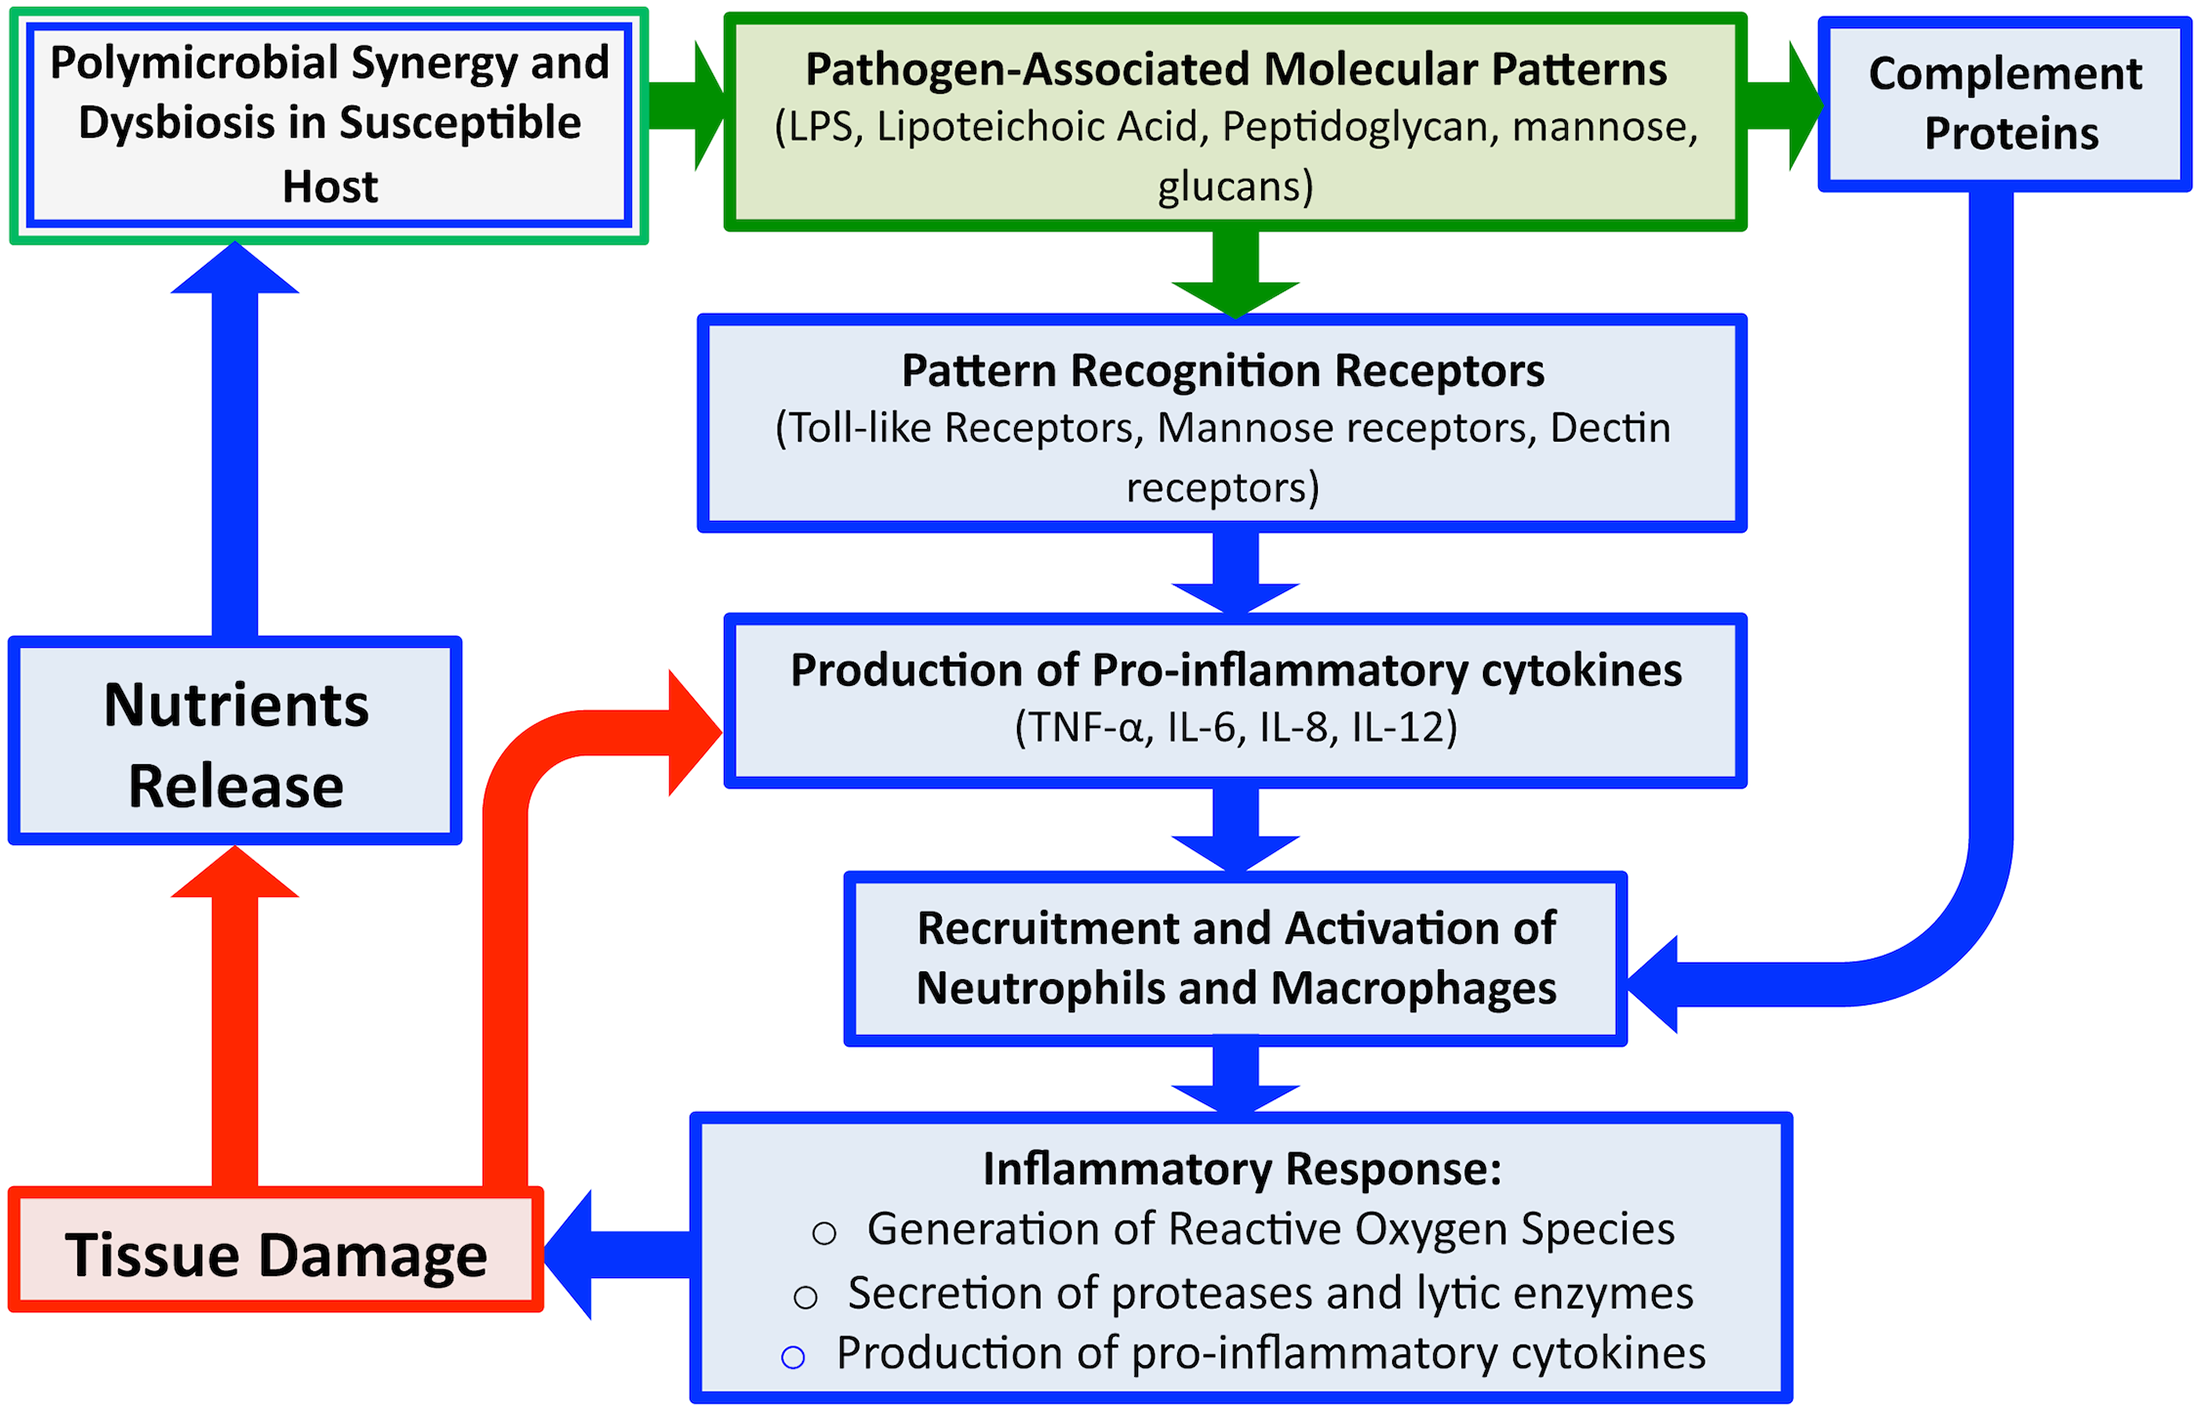 An overview schematic of the microbial and host-associated pathologies of periodontal disease.